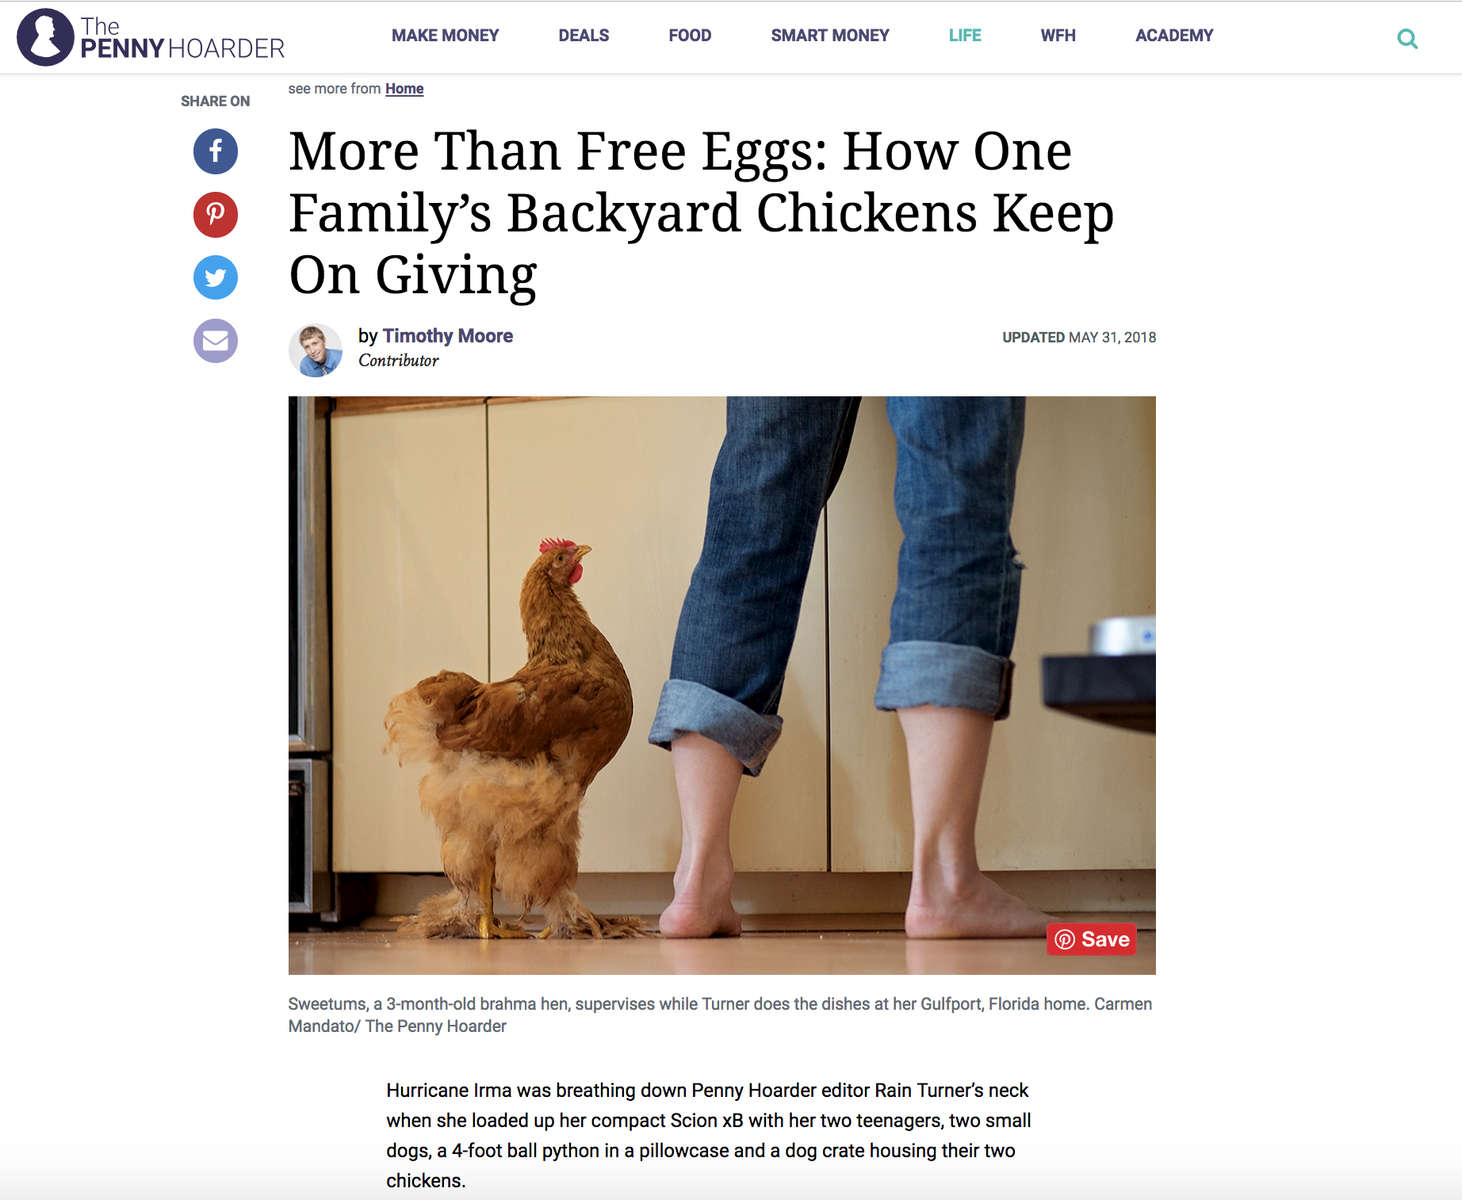 https://www.thepennyhoarder.com/life/backyard-chickens/?aff_id=2&aff_sub2=search